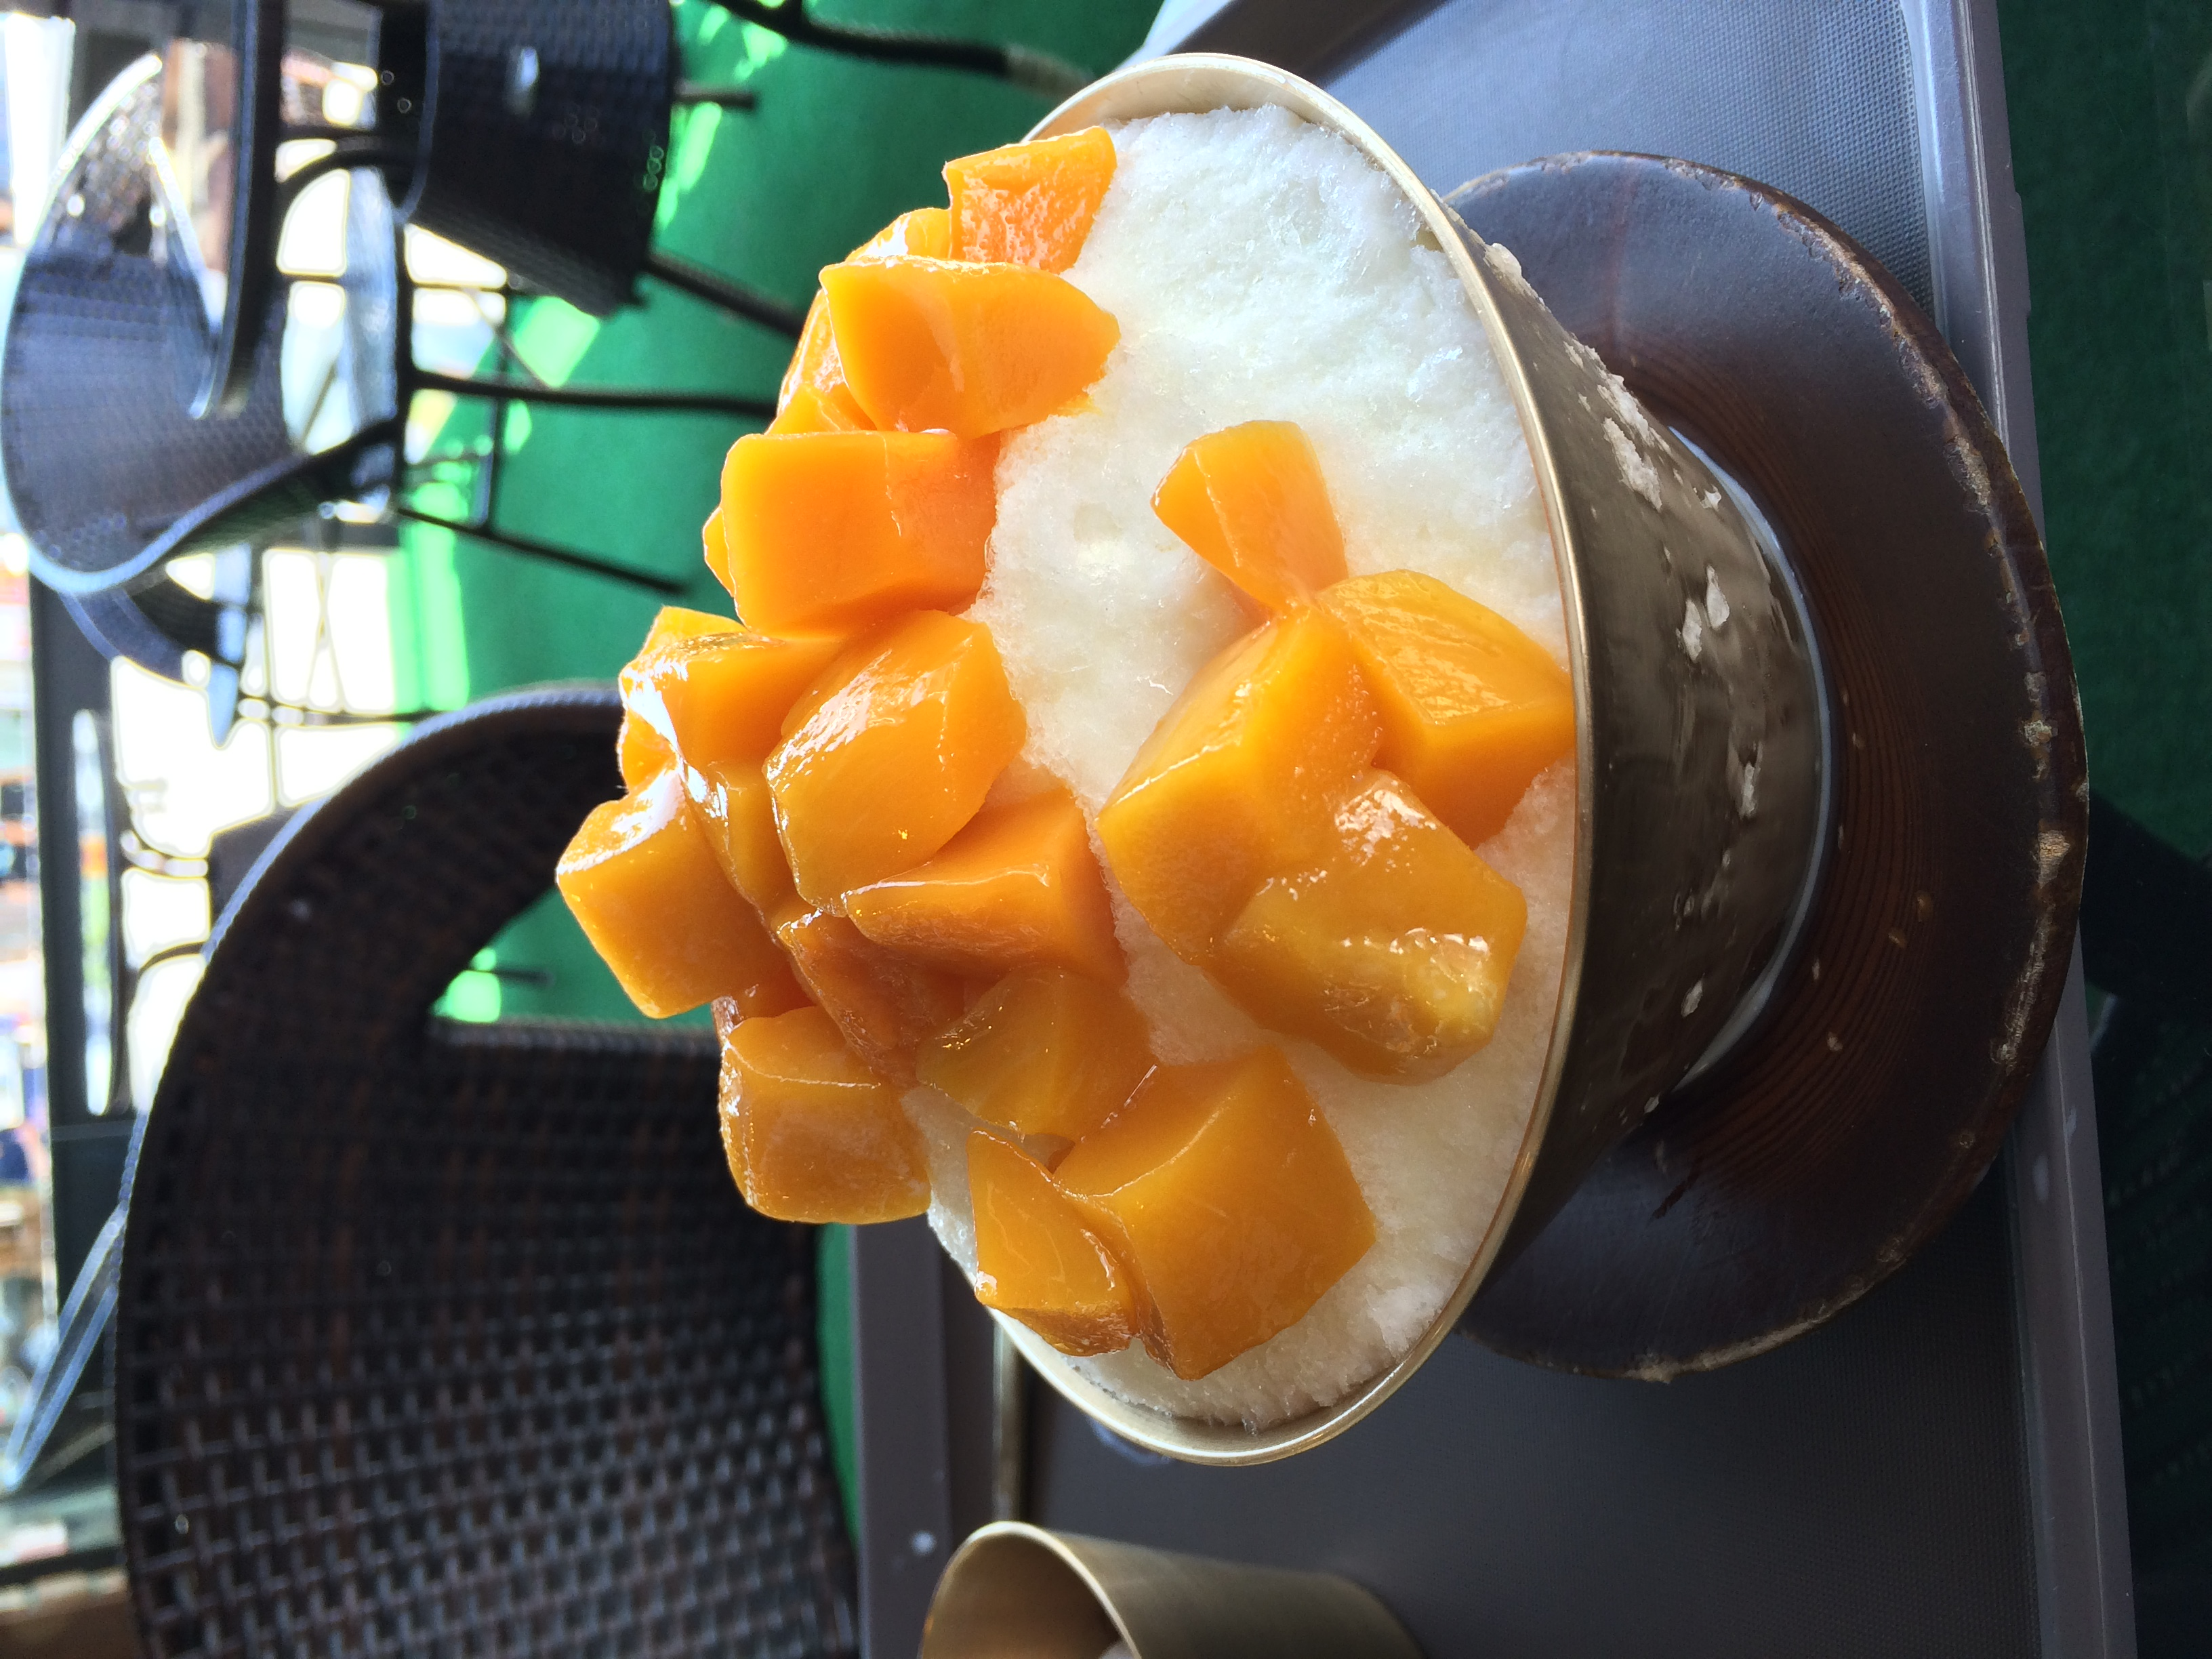 My new favorite dessert - mangos over shaved ice, with red bean paste and condensed milk poured over top. Delicious anytime - especially on 100+ degree days!